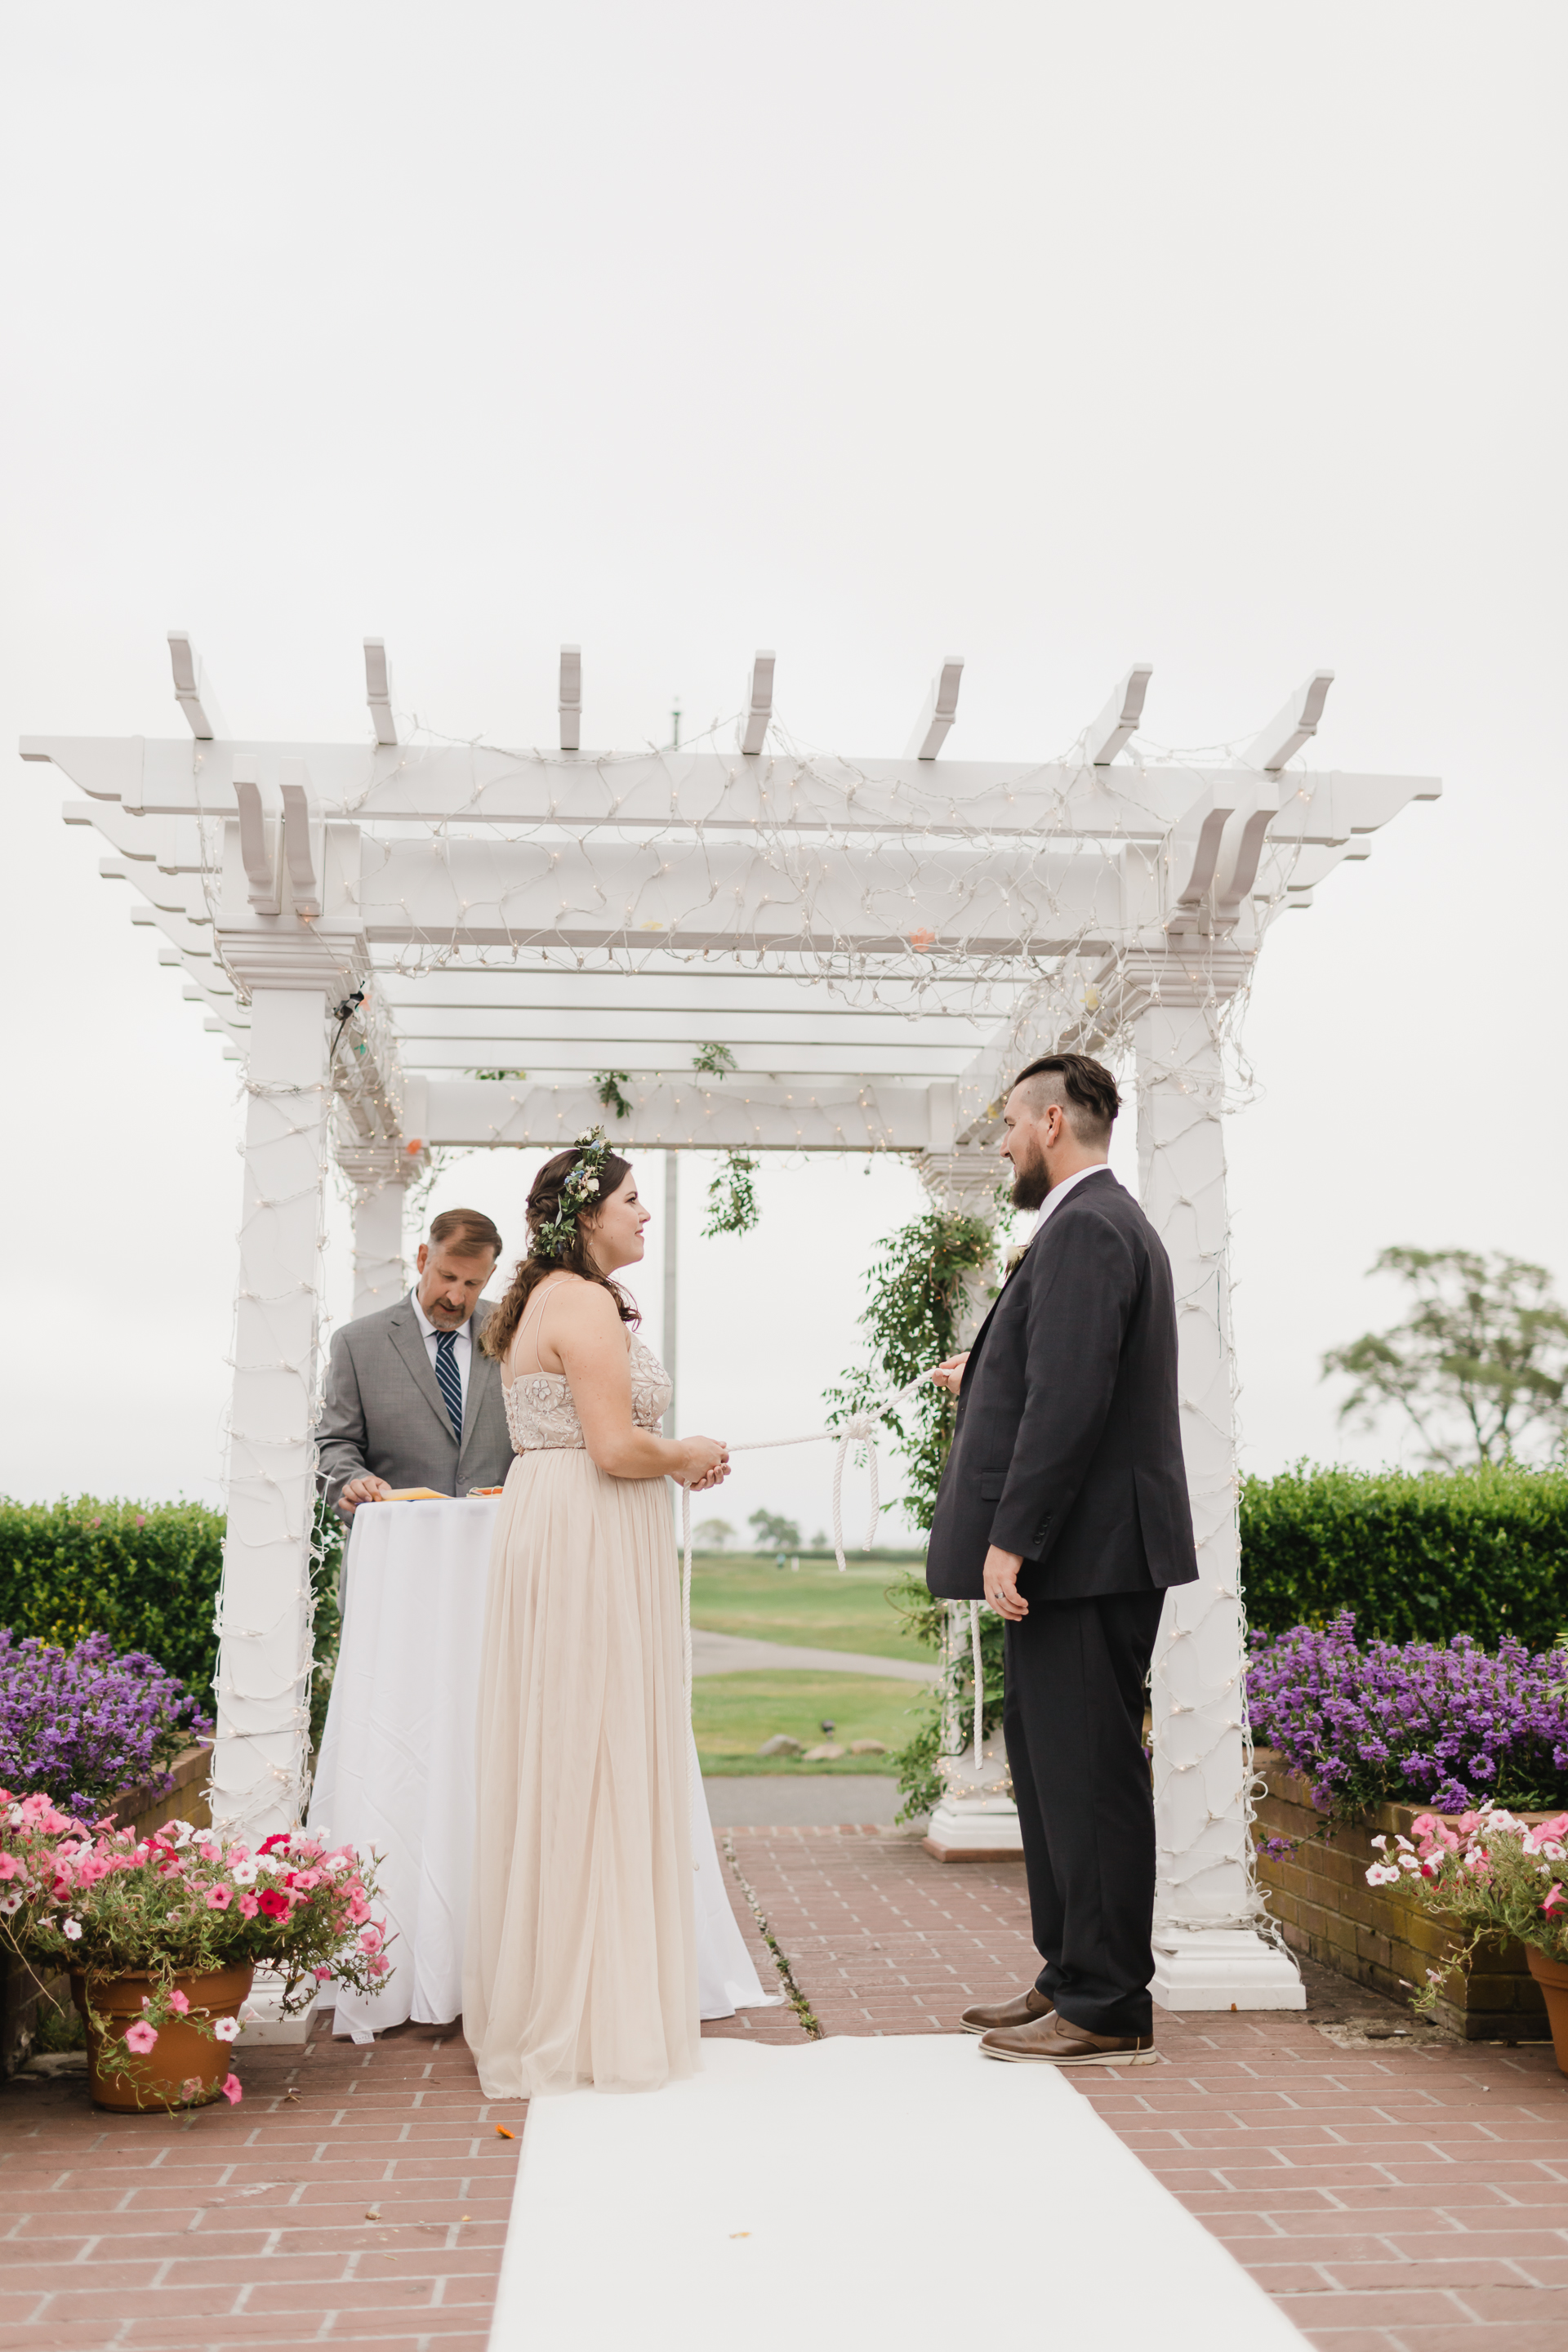 Gianna Keiko Atlanta NYC California Wedding Photographer_Sneak Peek-50.jpg